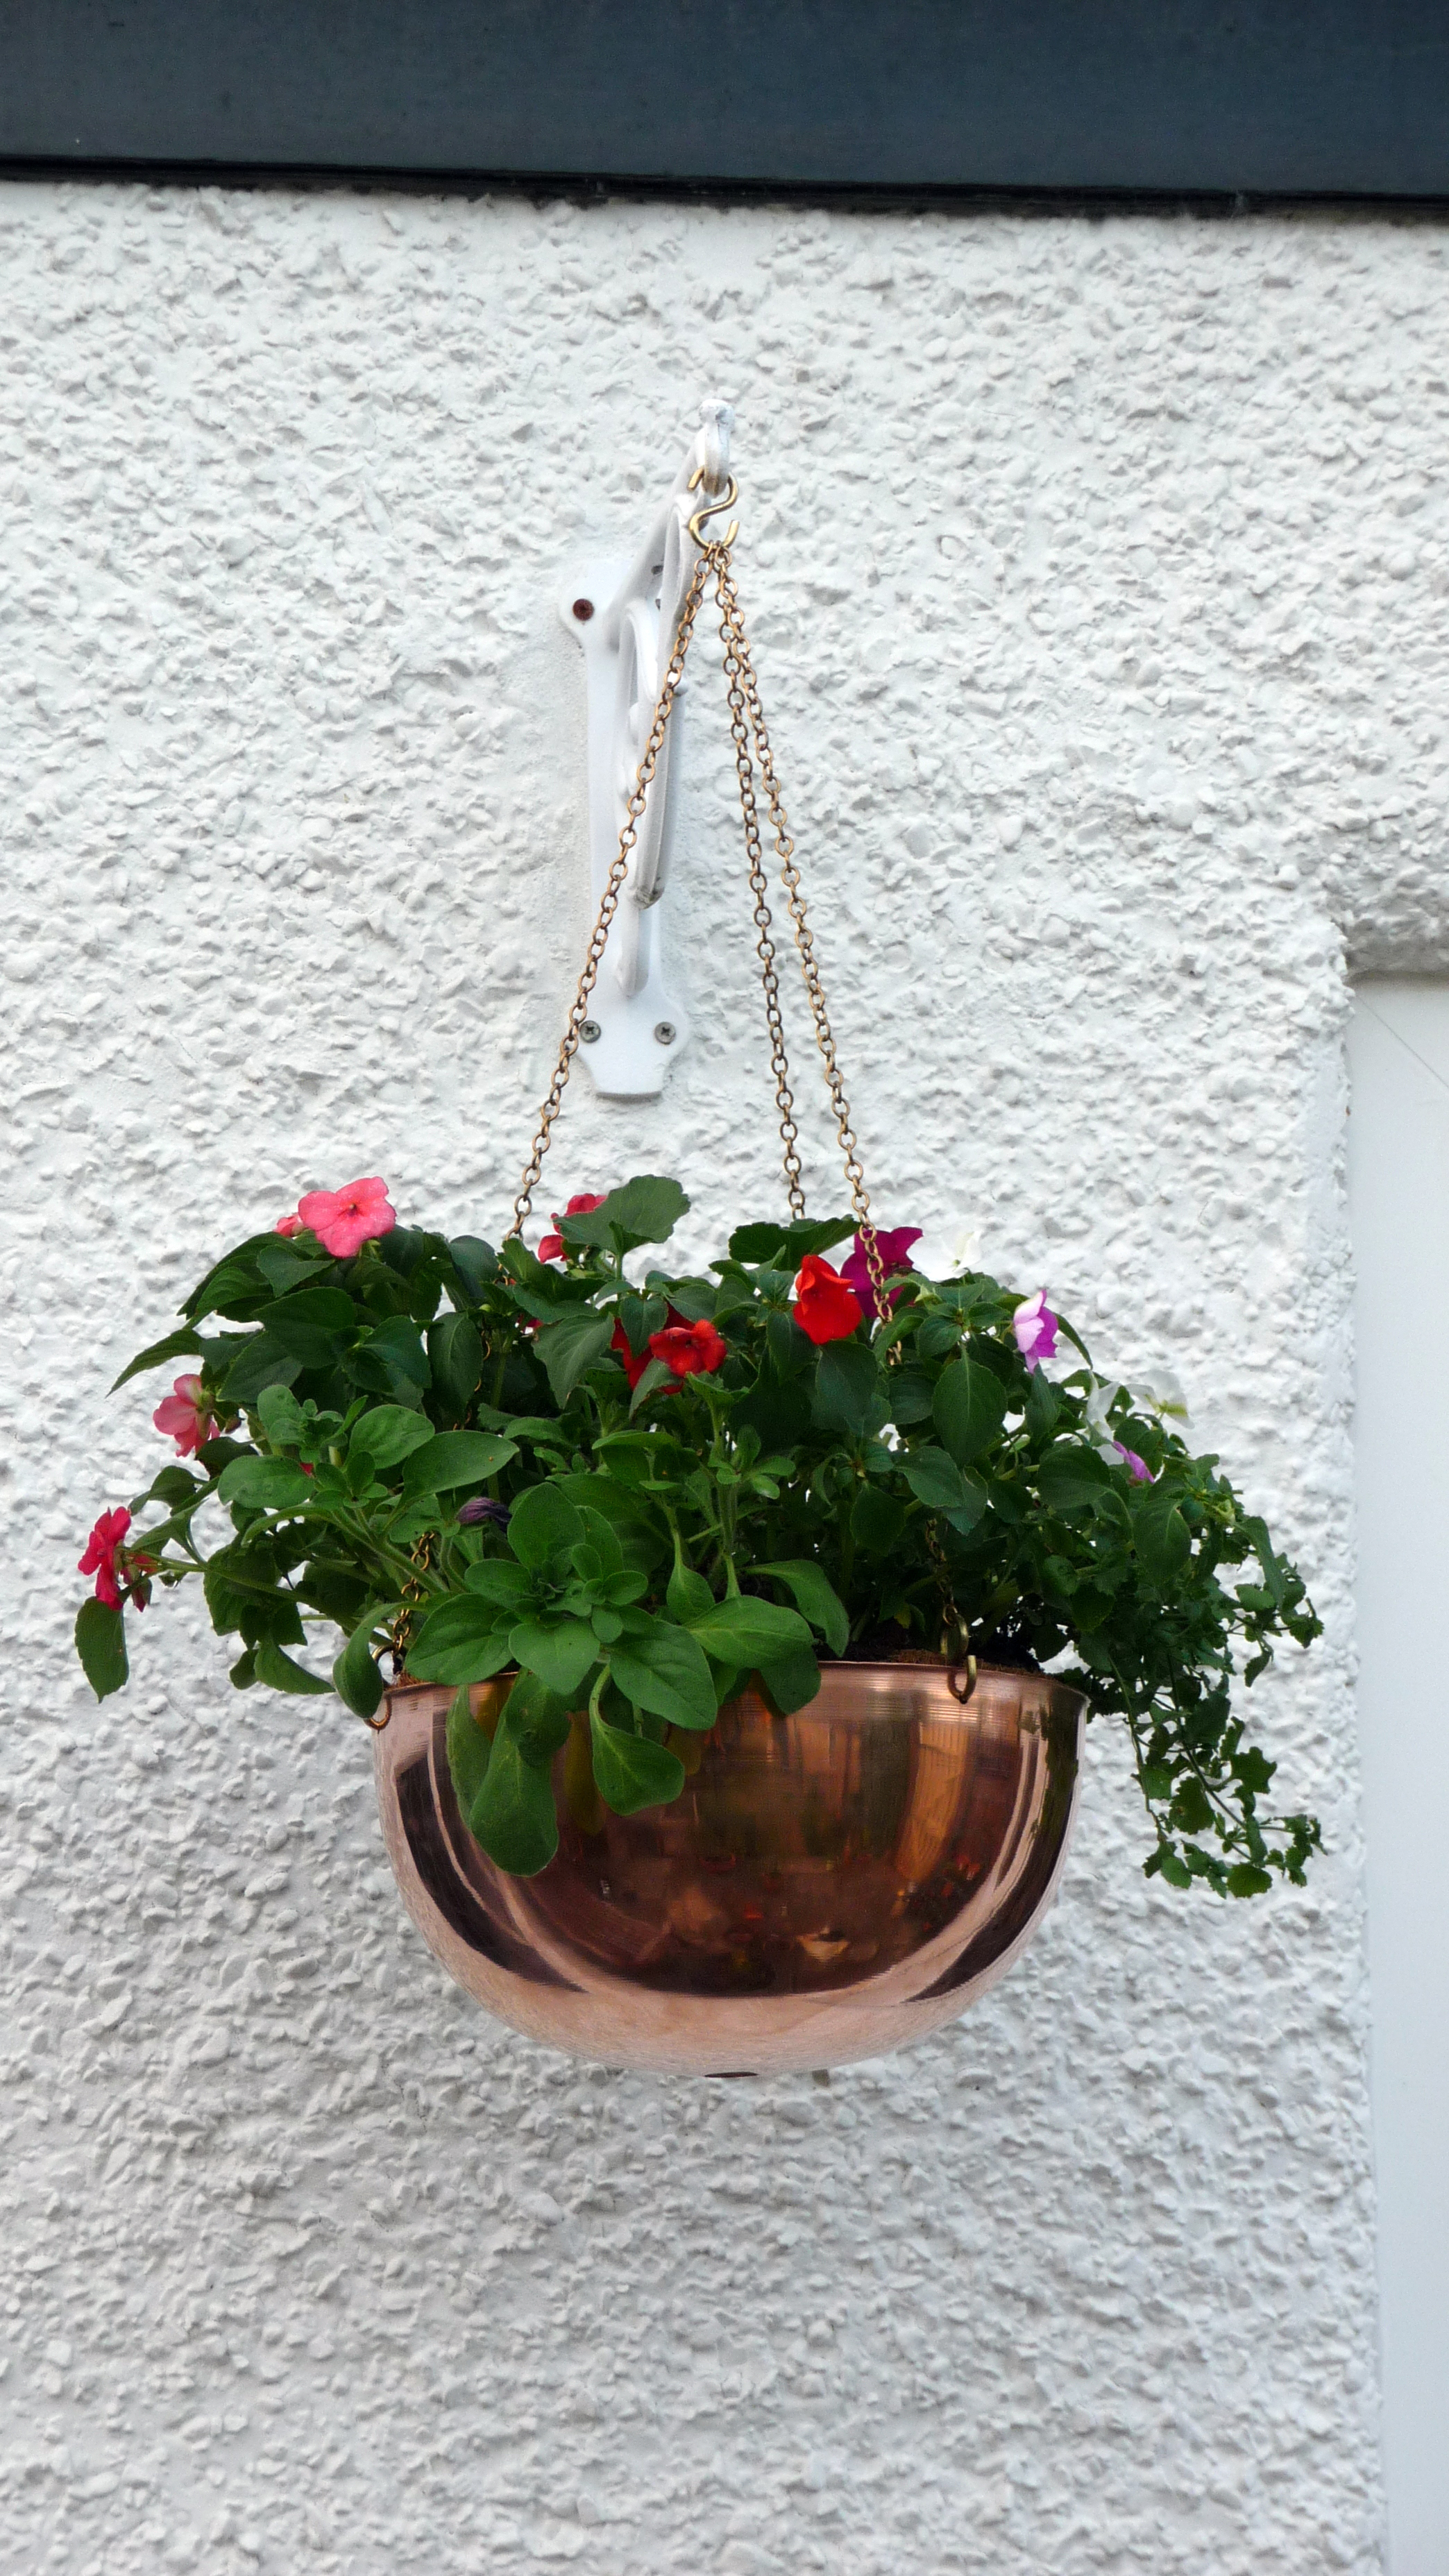 Hanging copper basket